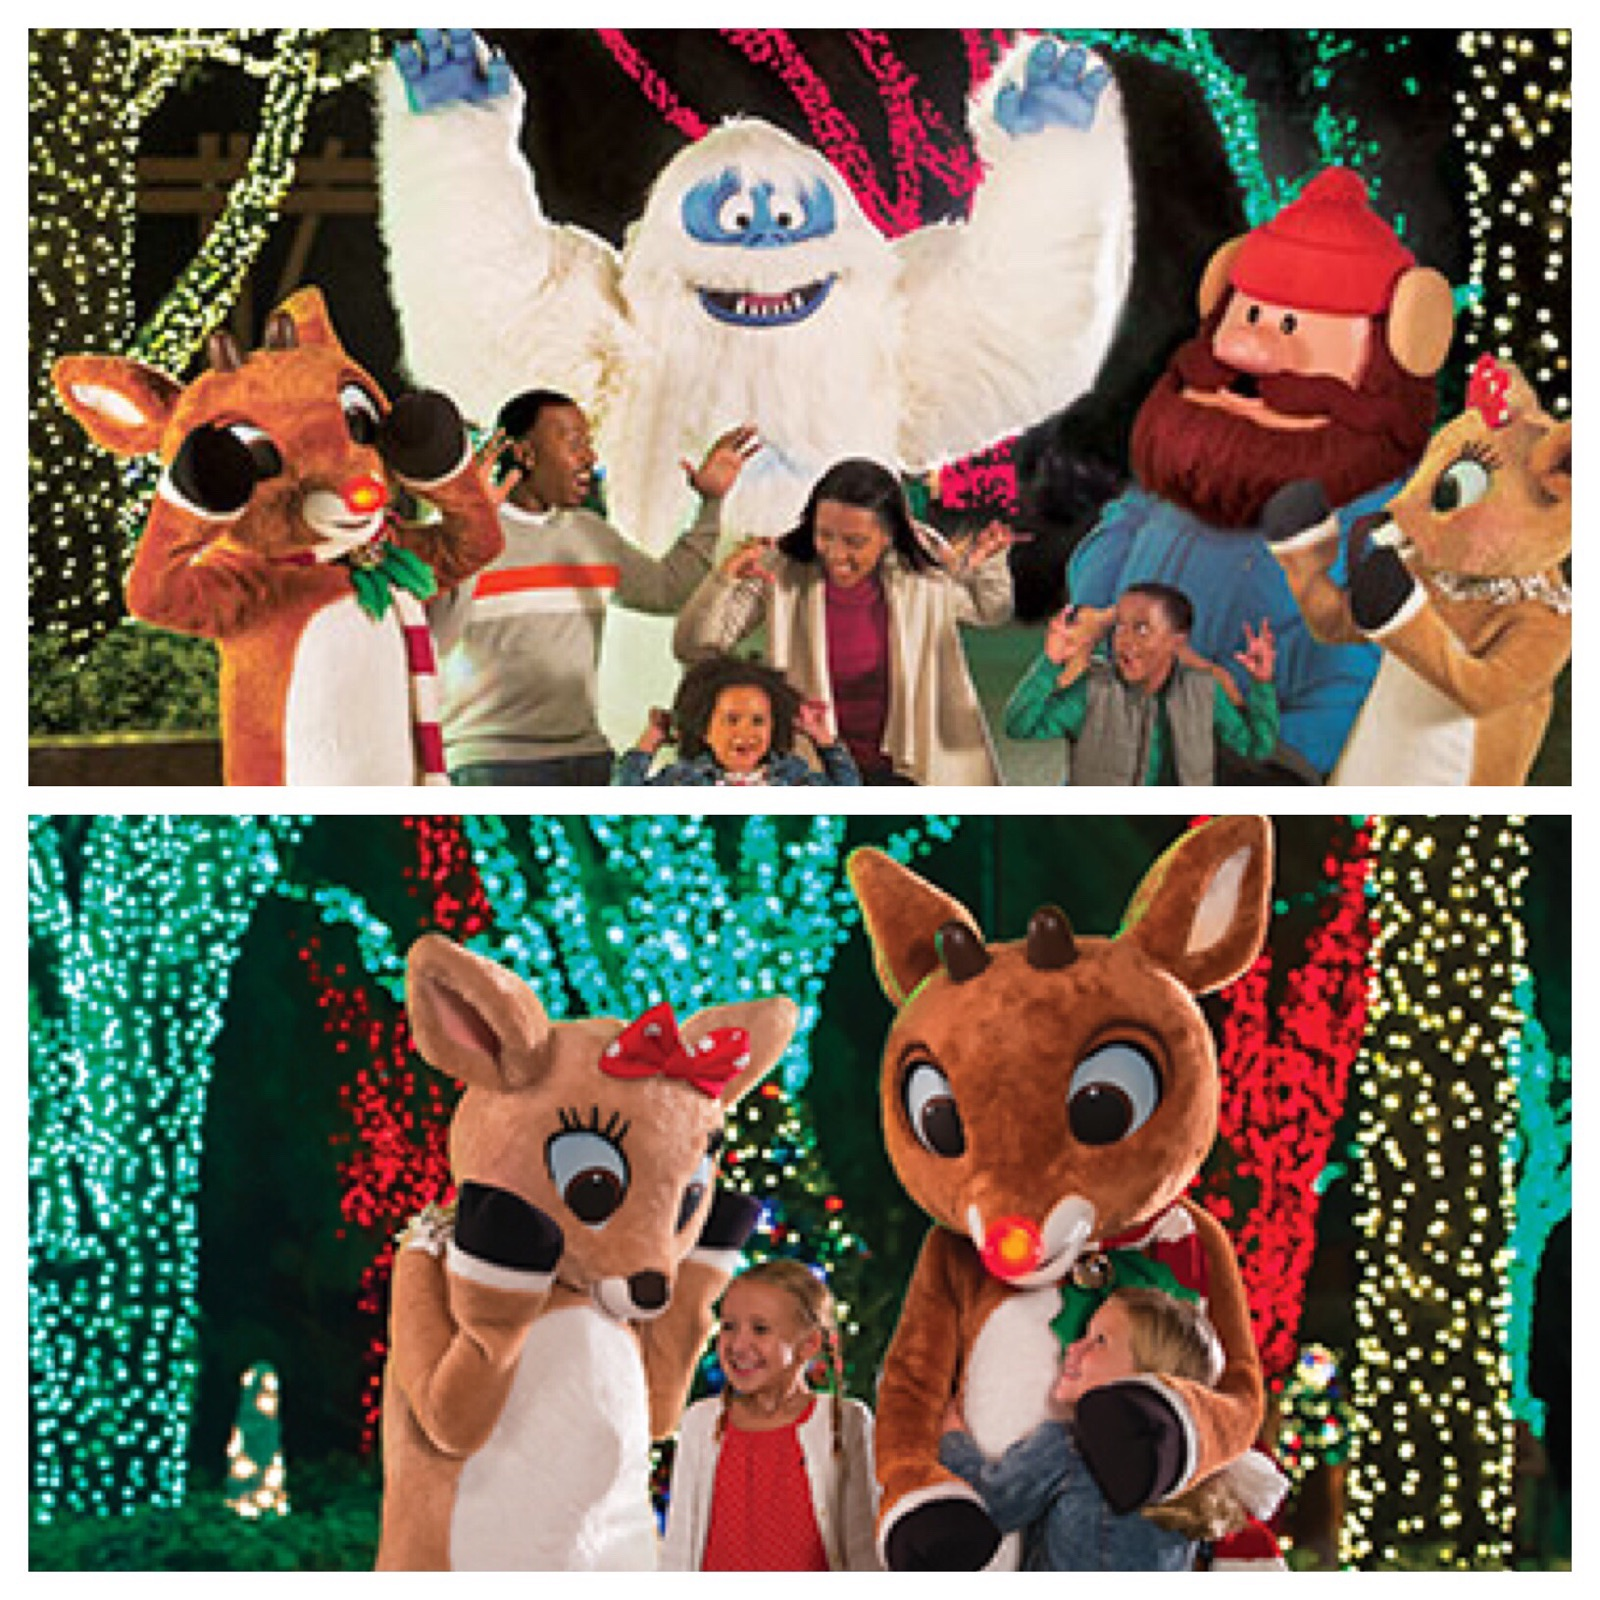 Christmas at SeaWorld: Meet udolph, Clarice, Bumble and Yukon Cornelius from the classic Christmas Rudolph, the Red Nosed Reindeer television special.